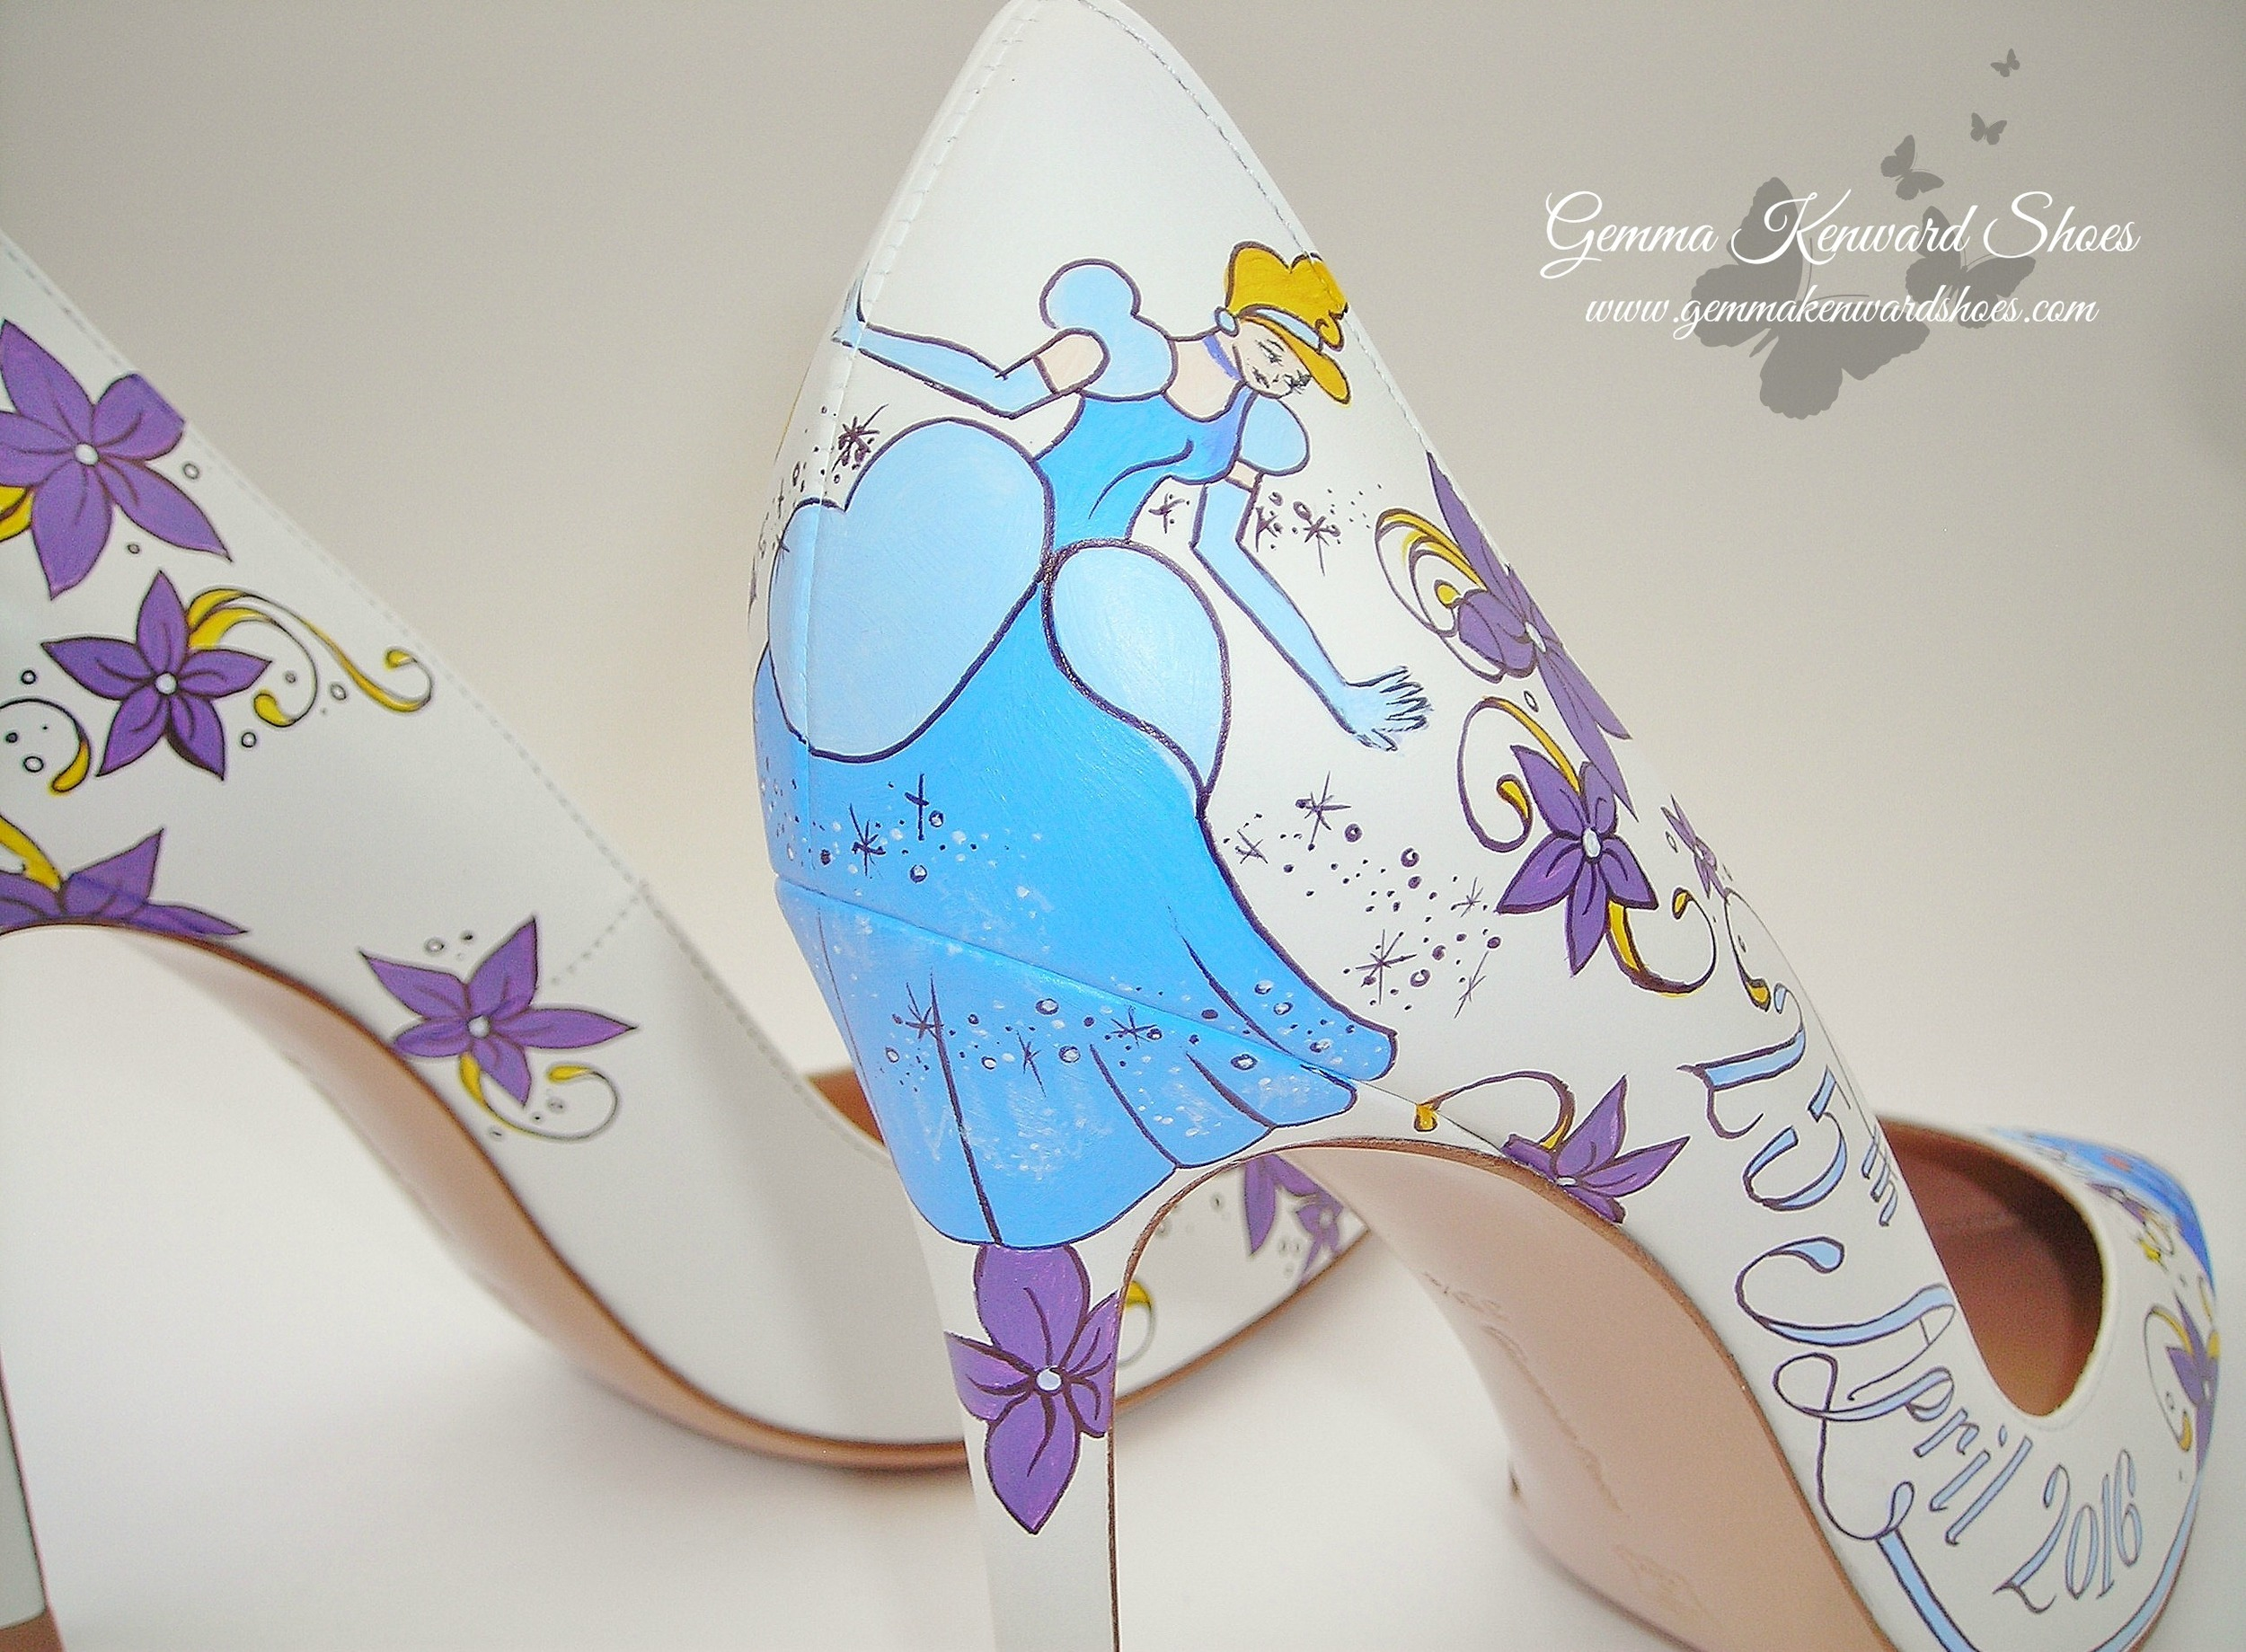 Tinkerbell has been painted on the wedding shoes, can you spot her?